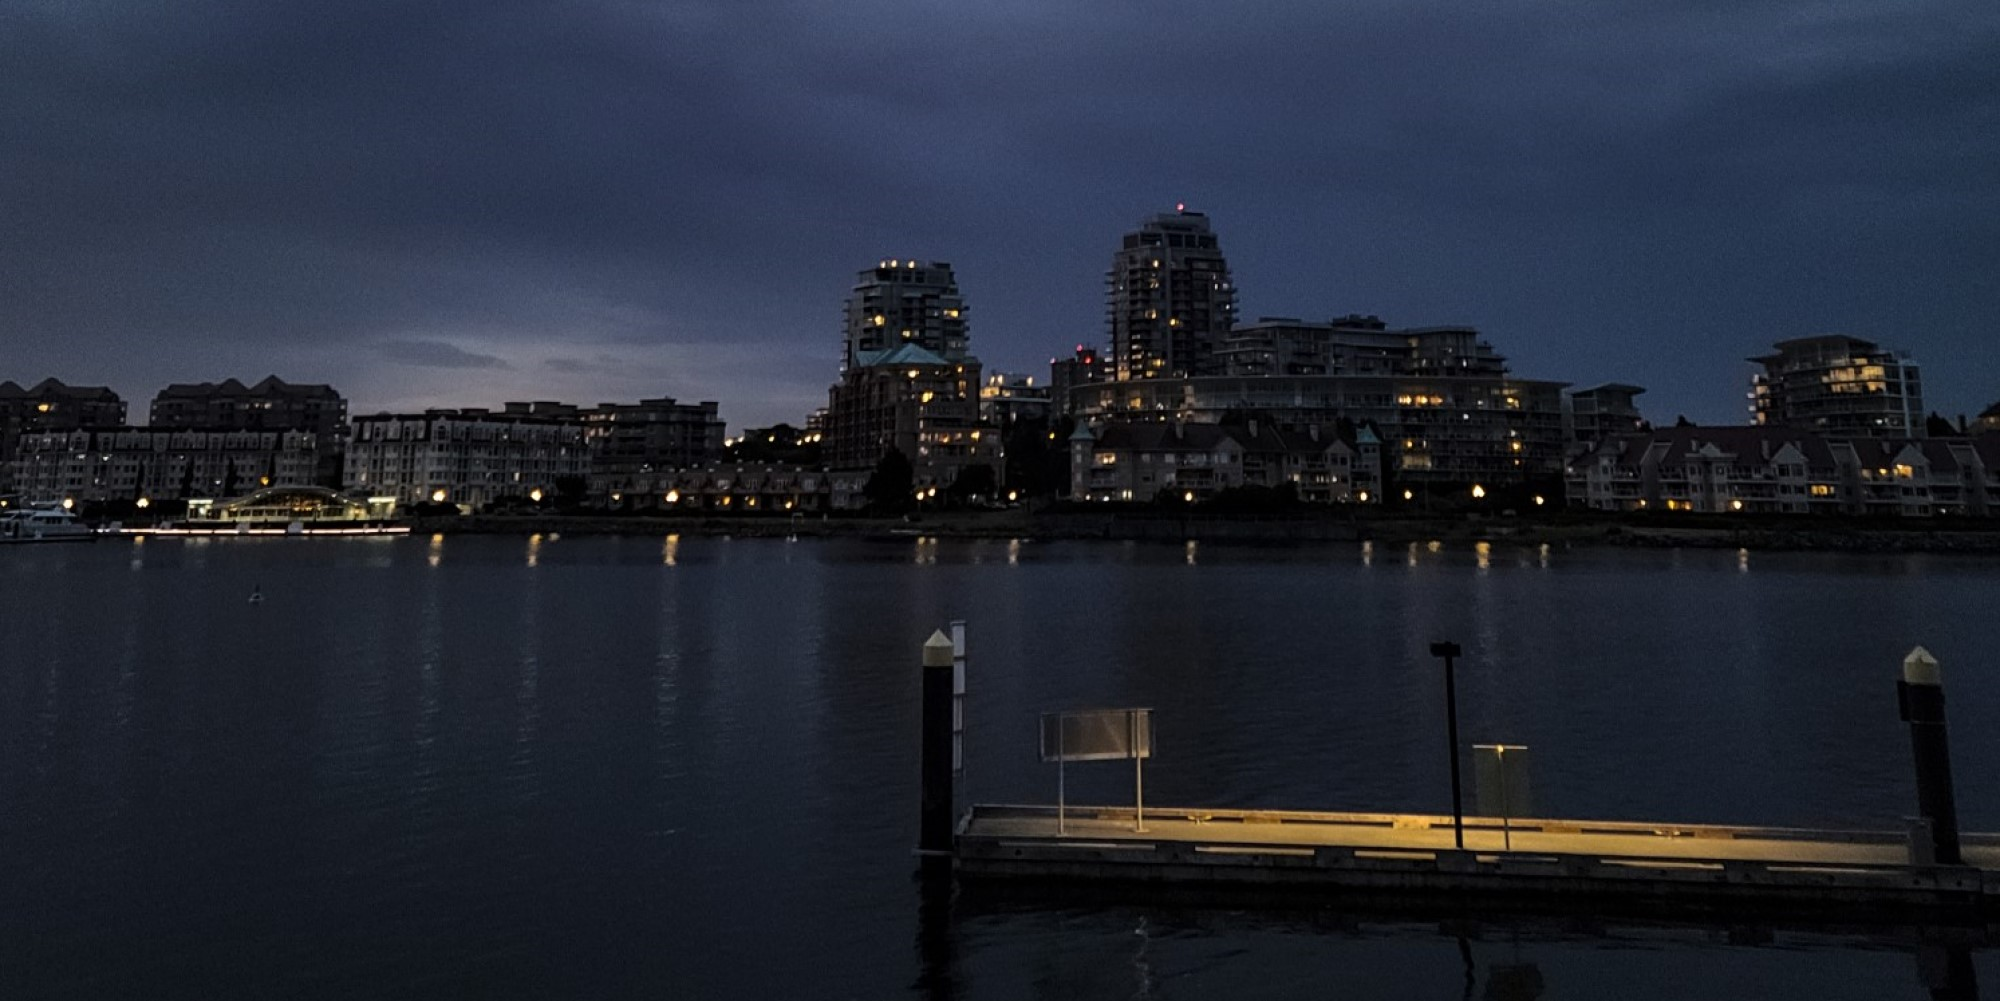 Creepy hallways, stunning sunsets: The delivery driver's view of Victoria